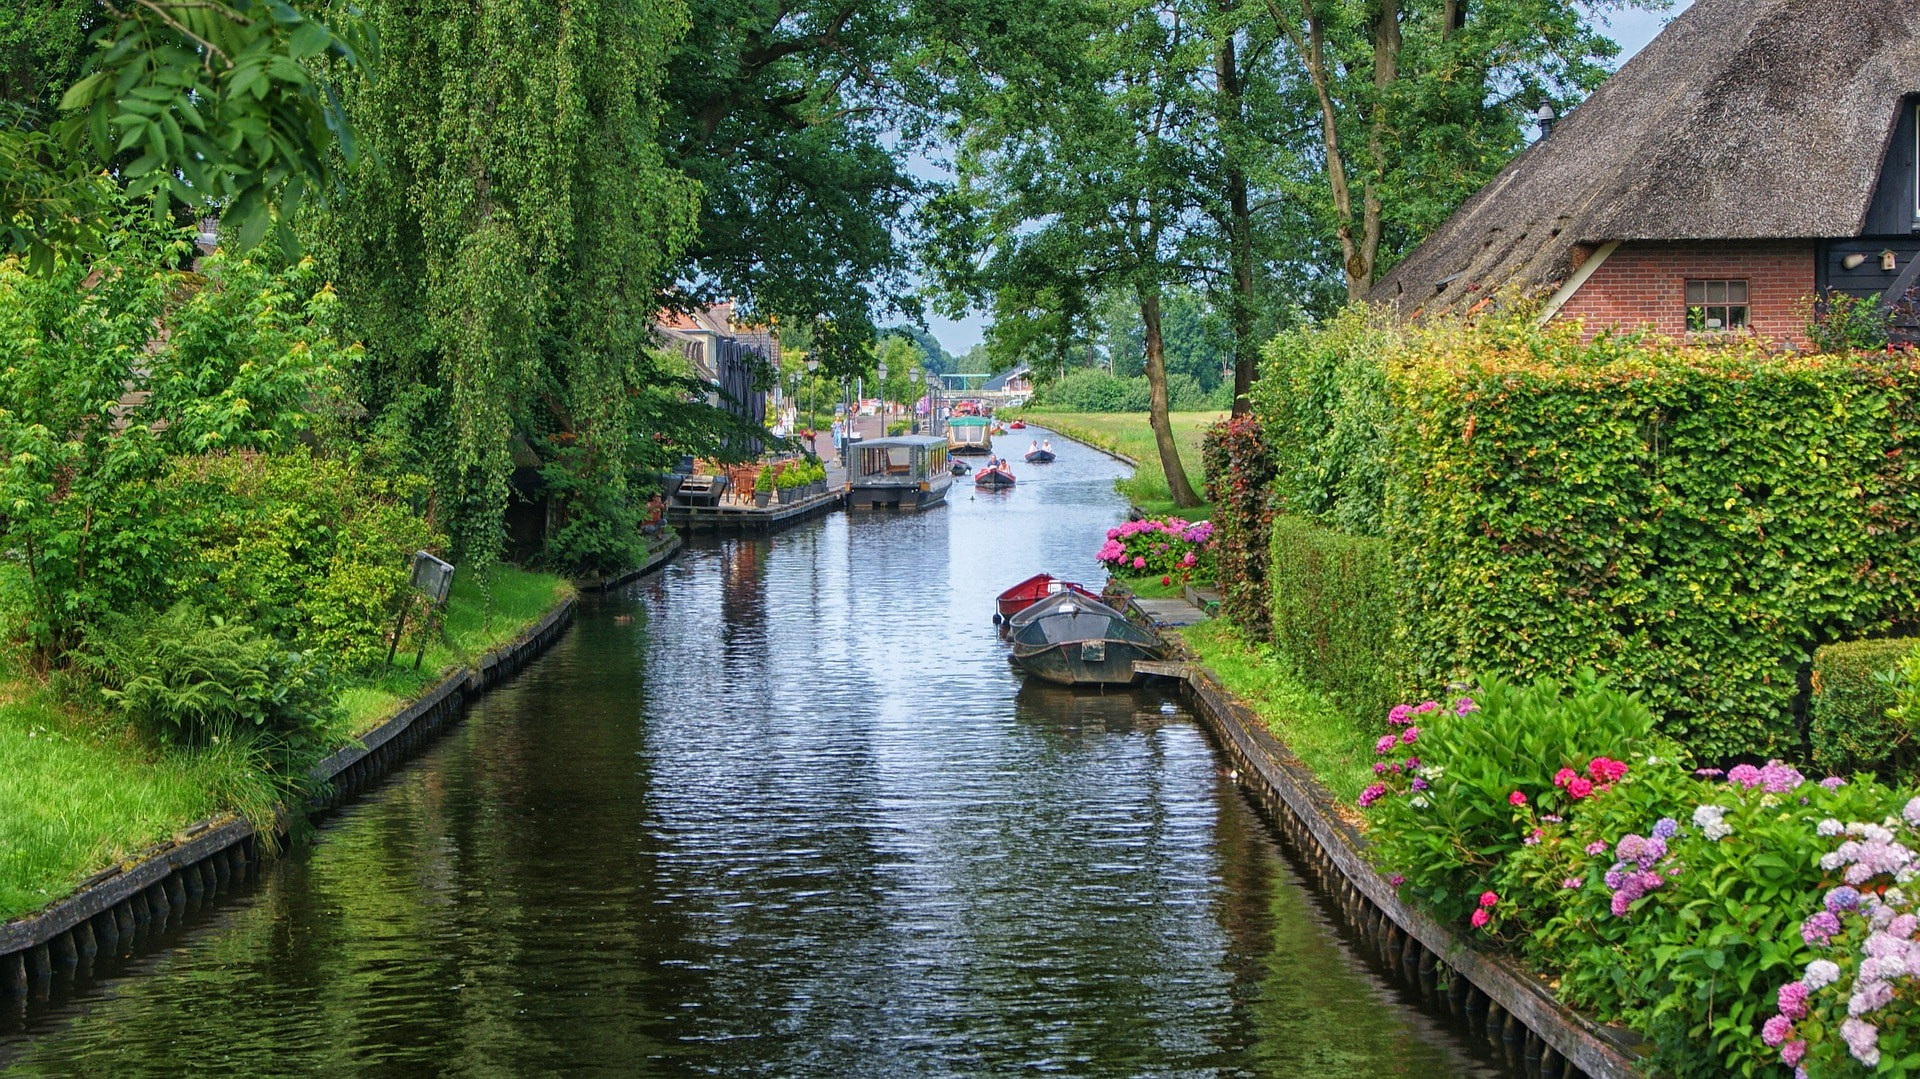 One of Giethoorn's picturesque canals   © pixabay